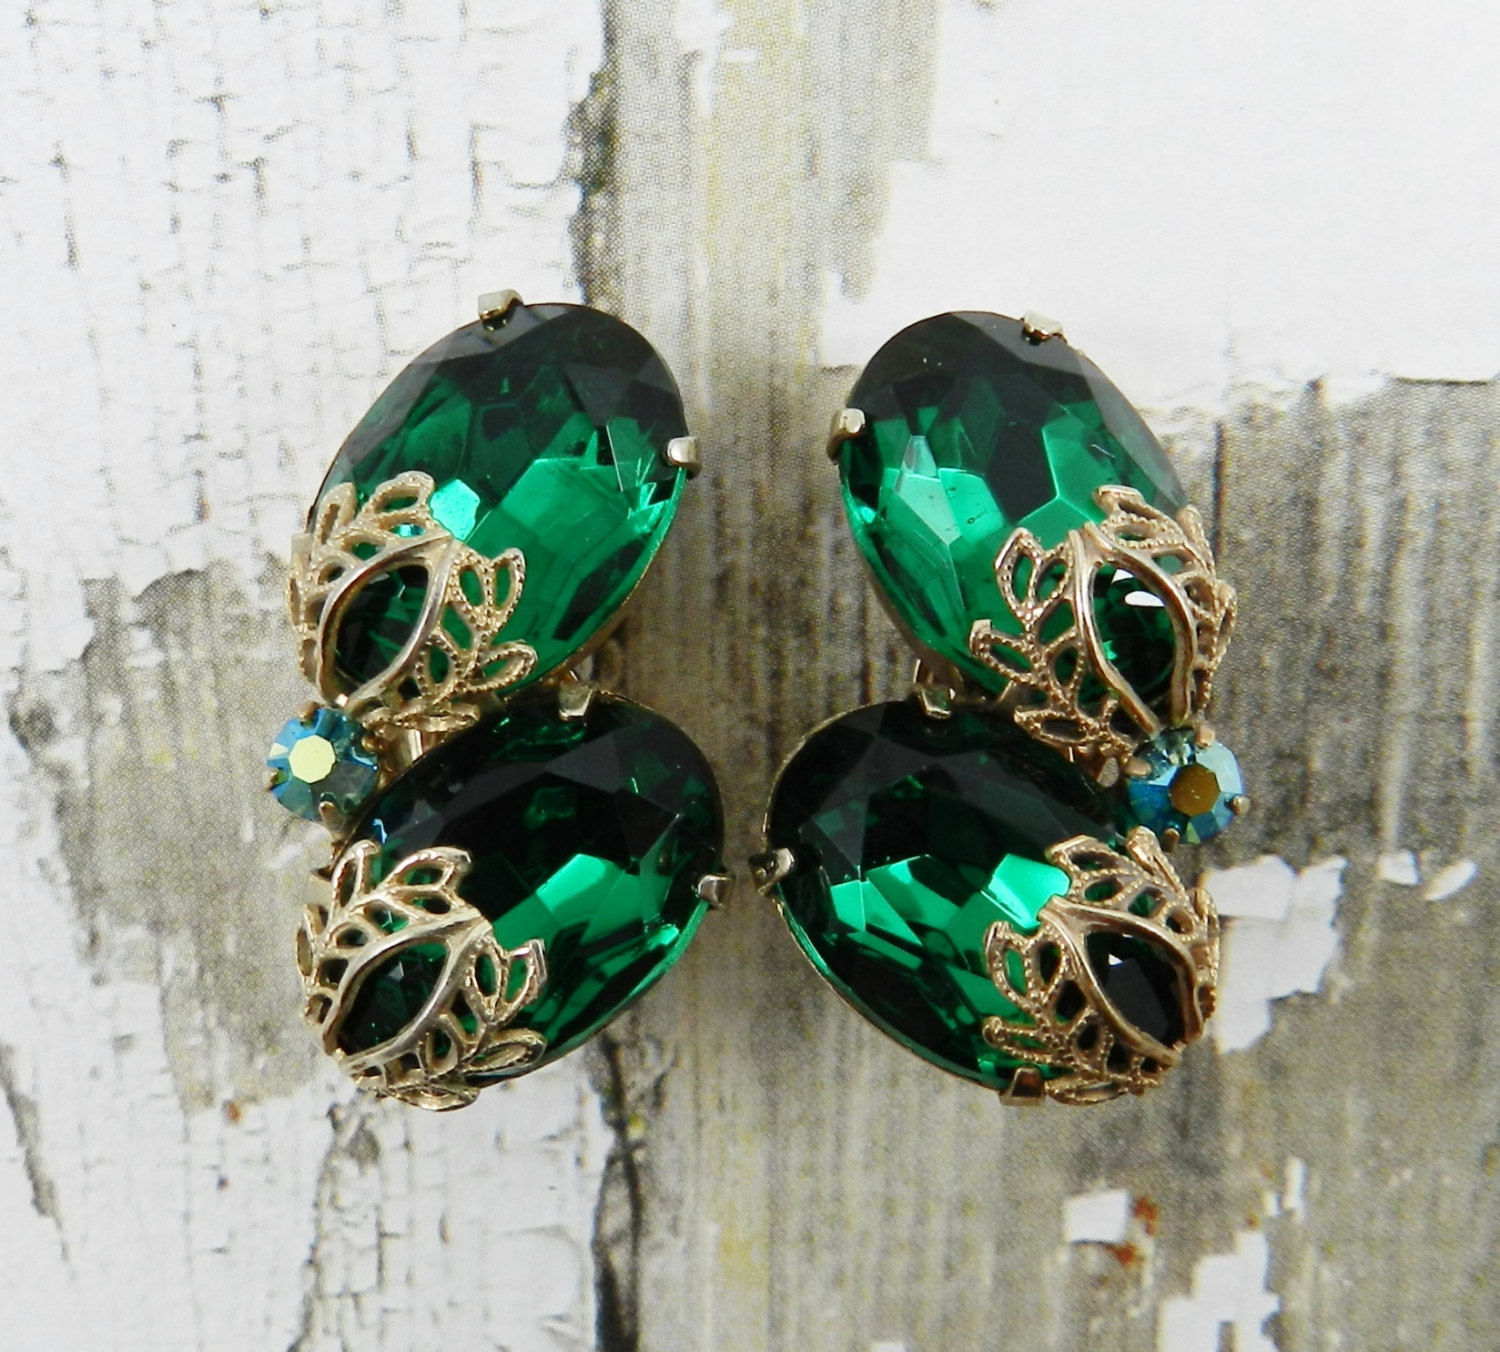 Gorgeous Vintage Rhinestone Earrings Emerald Green, Vintage earrings, Sochi,  Фото №1